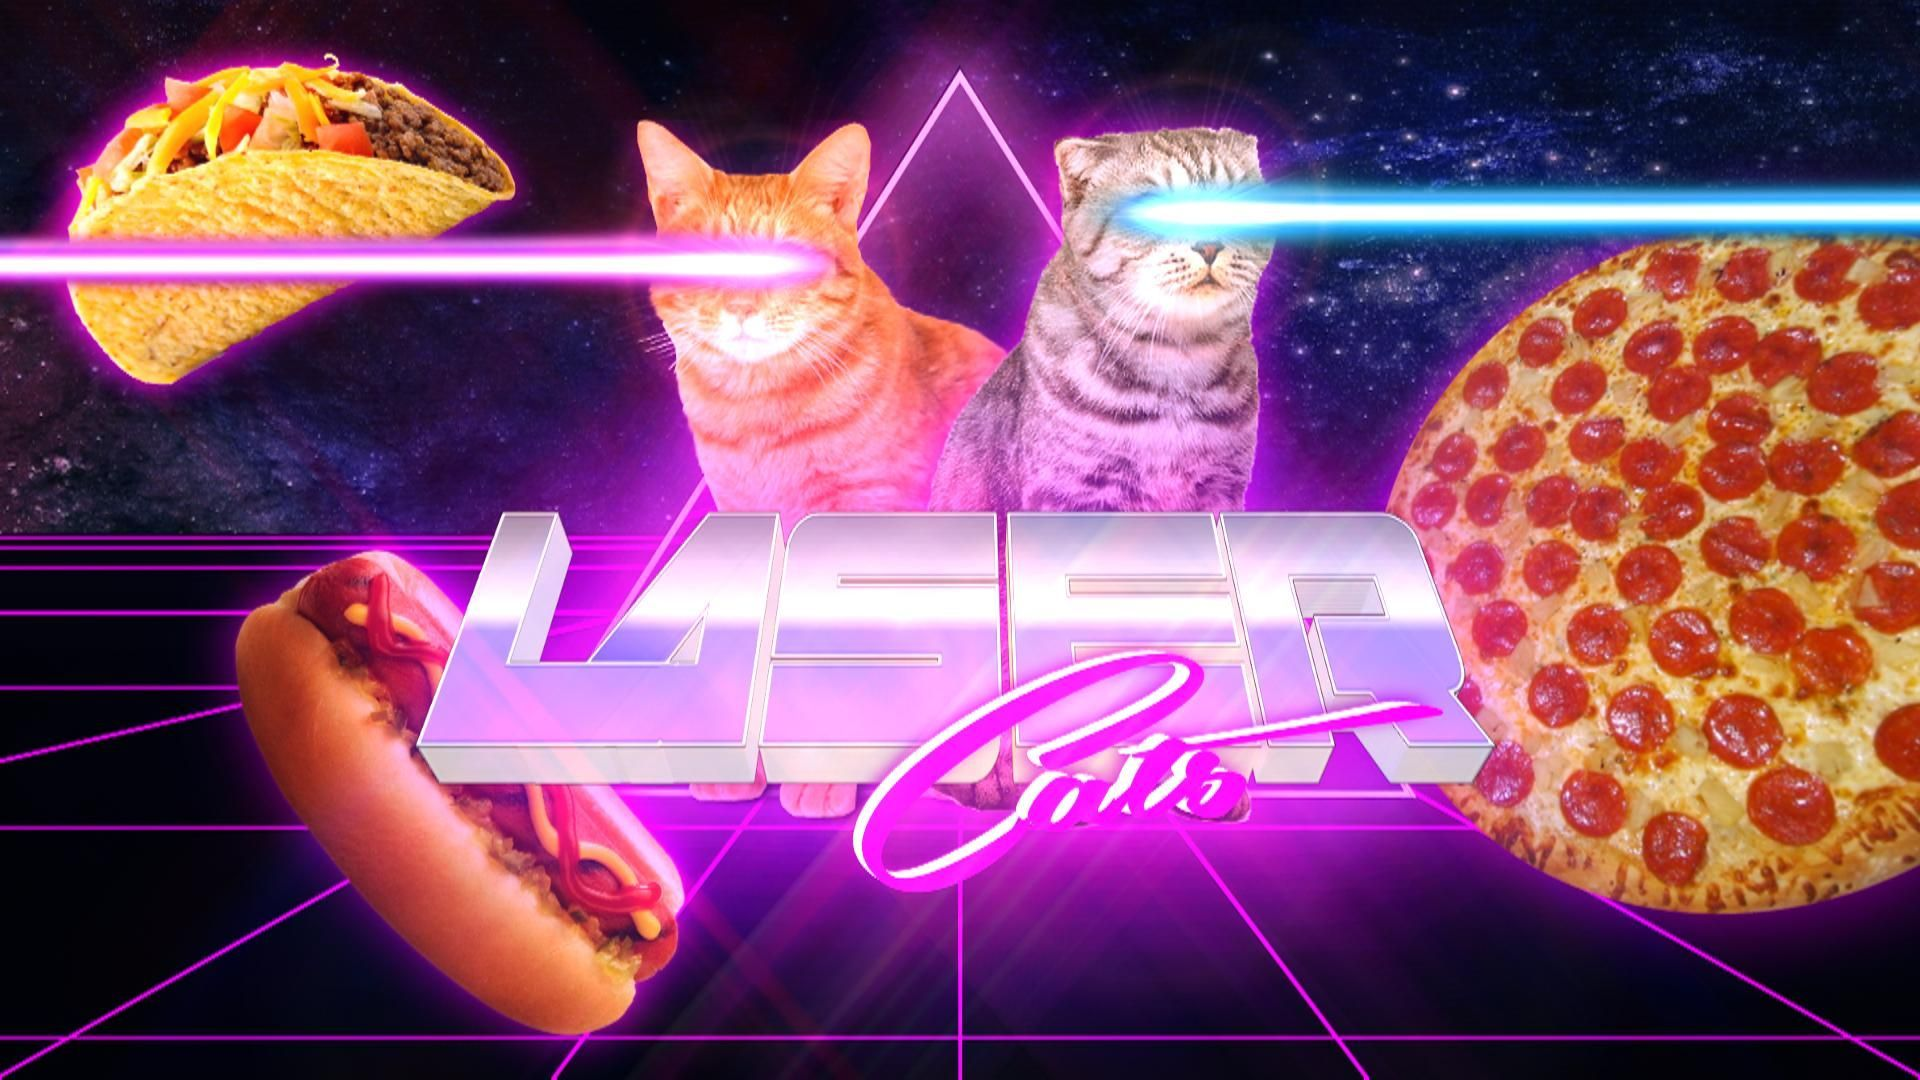 1920x1080 laser cats | cats in 2019 | Cat wallpaper, Space cat, Cats